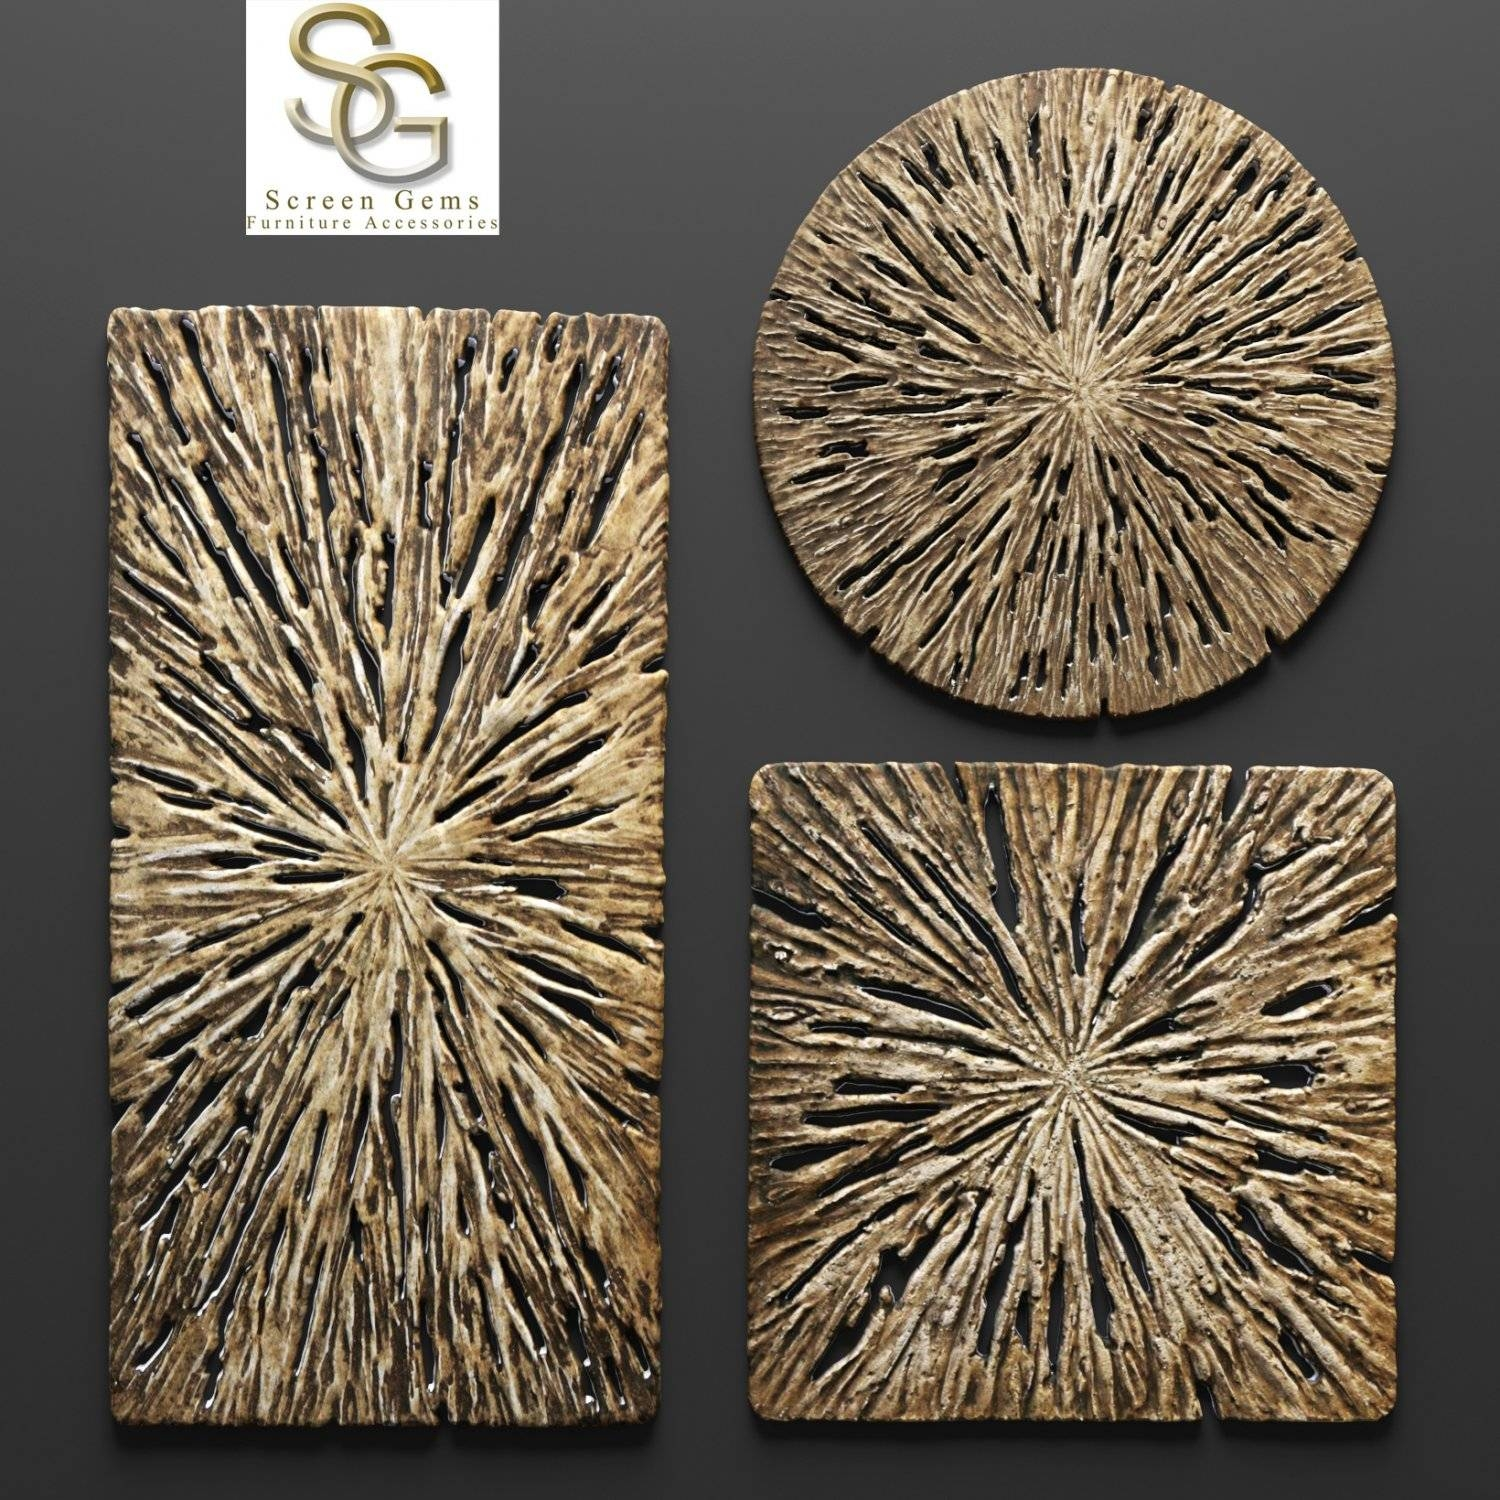 Rotten Wood Wall Art – Set 3d Model In Decoration 3dexport Intended For Most Recently Released Wood 3d Wall Art (View 14 of 20)